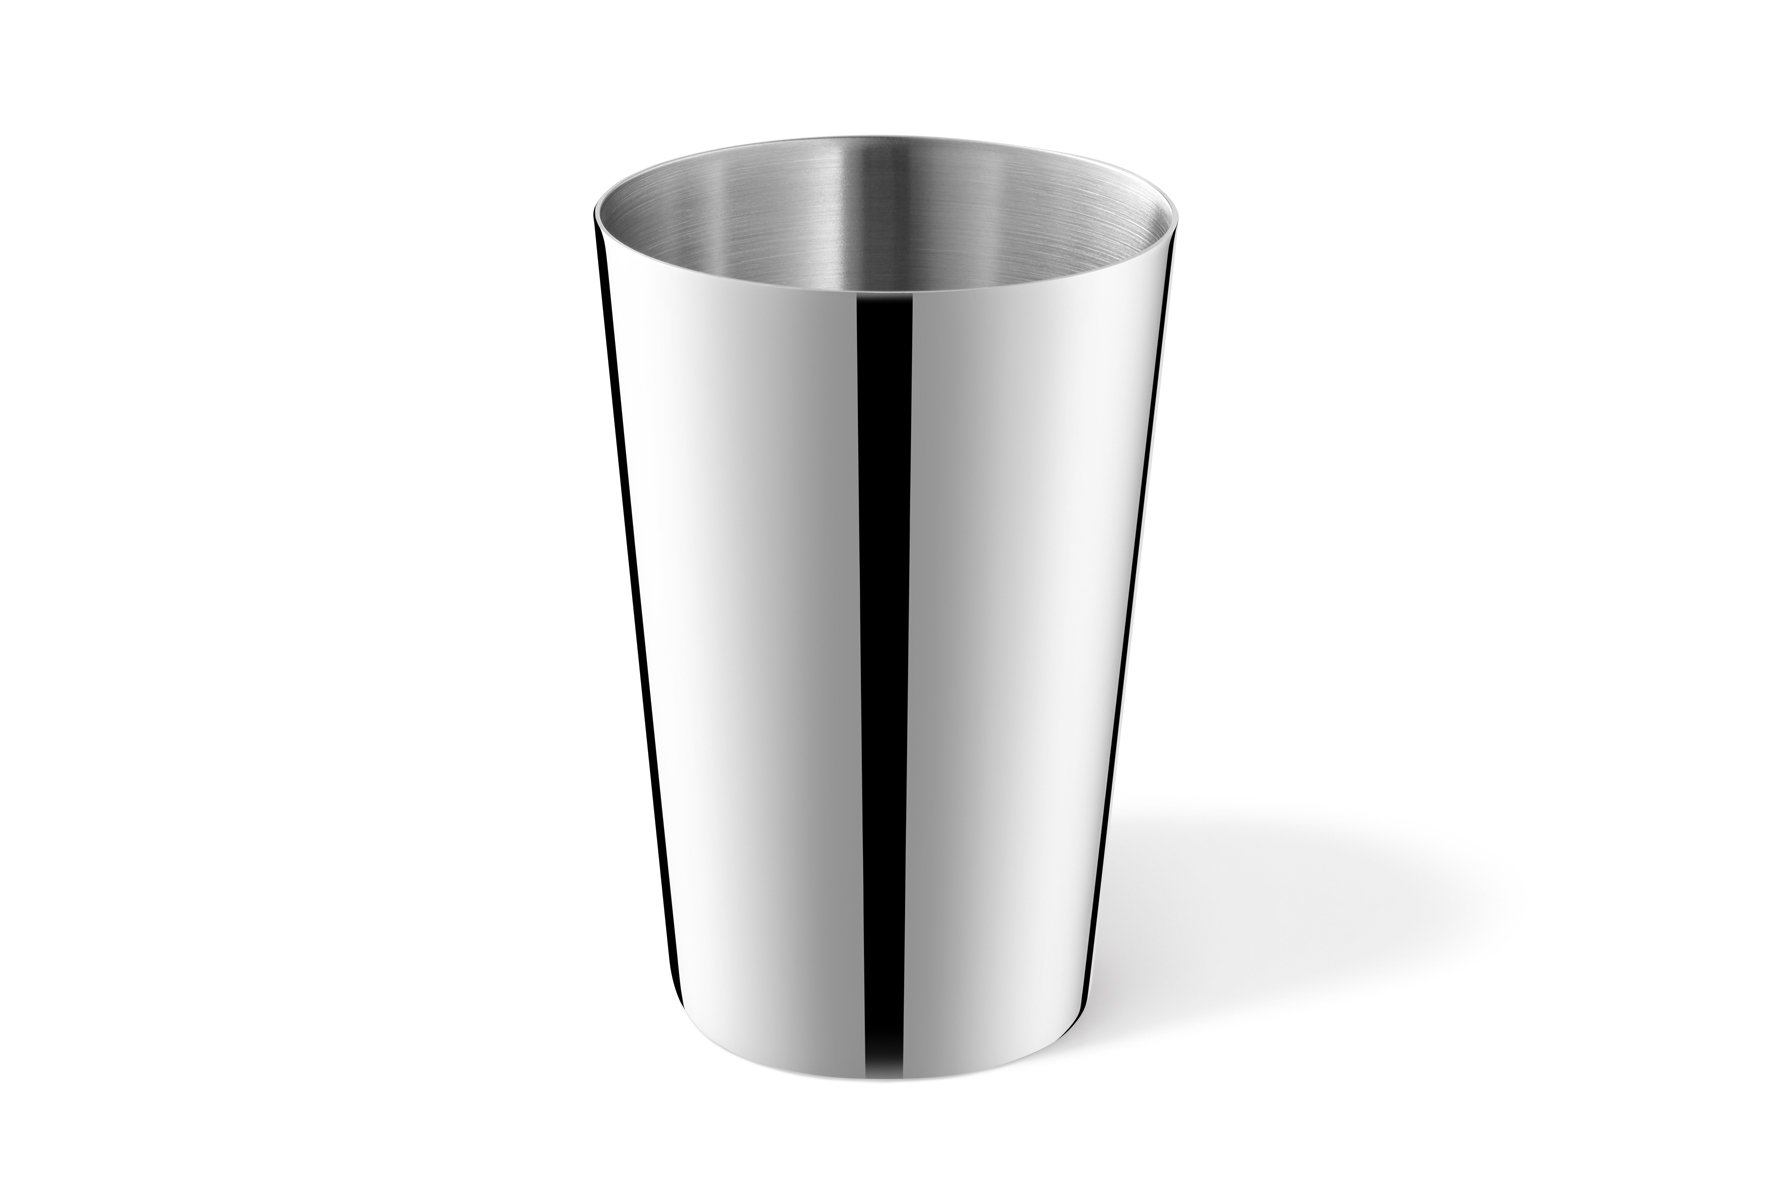 Zack 40341 Original LYOS Tumbler high Gloss 10.14 Oz. h. 4.3 in, ø 3.0 4.3'' x 3.0''